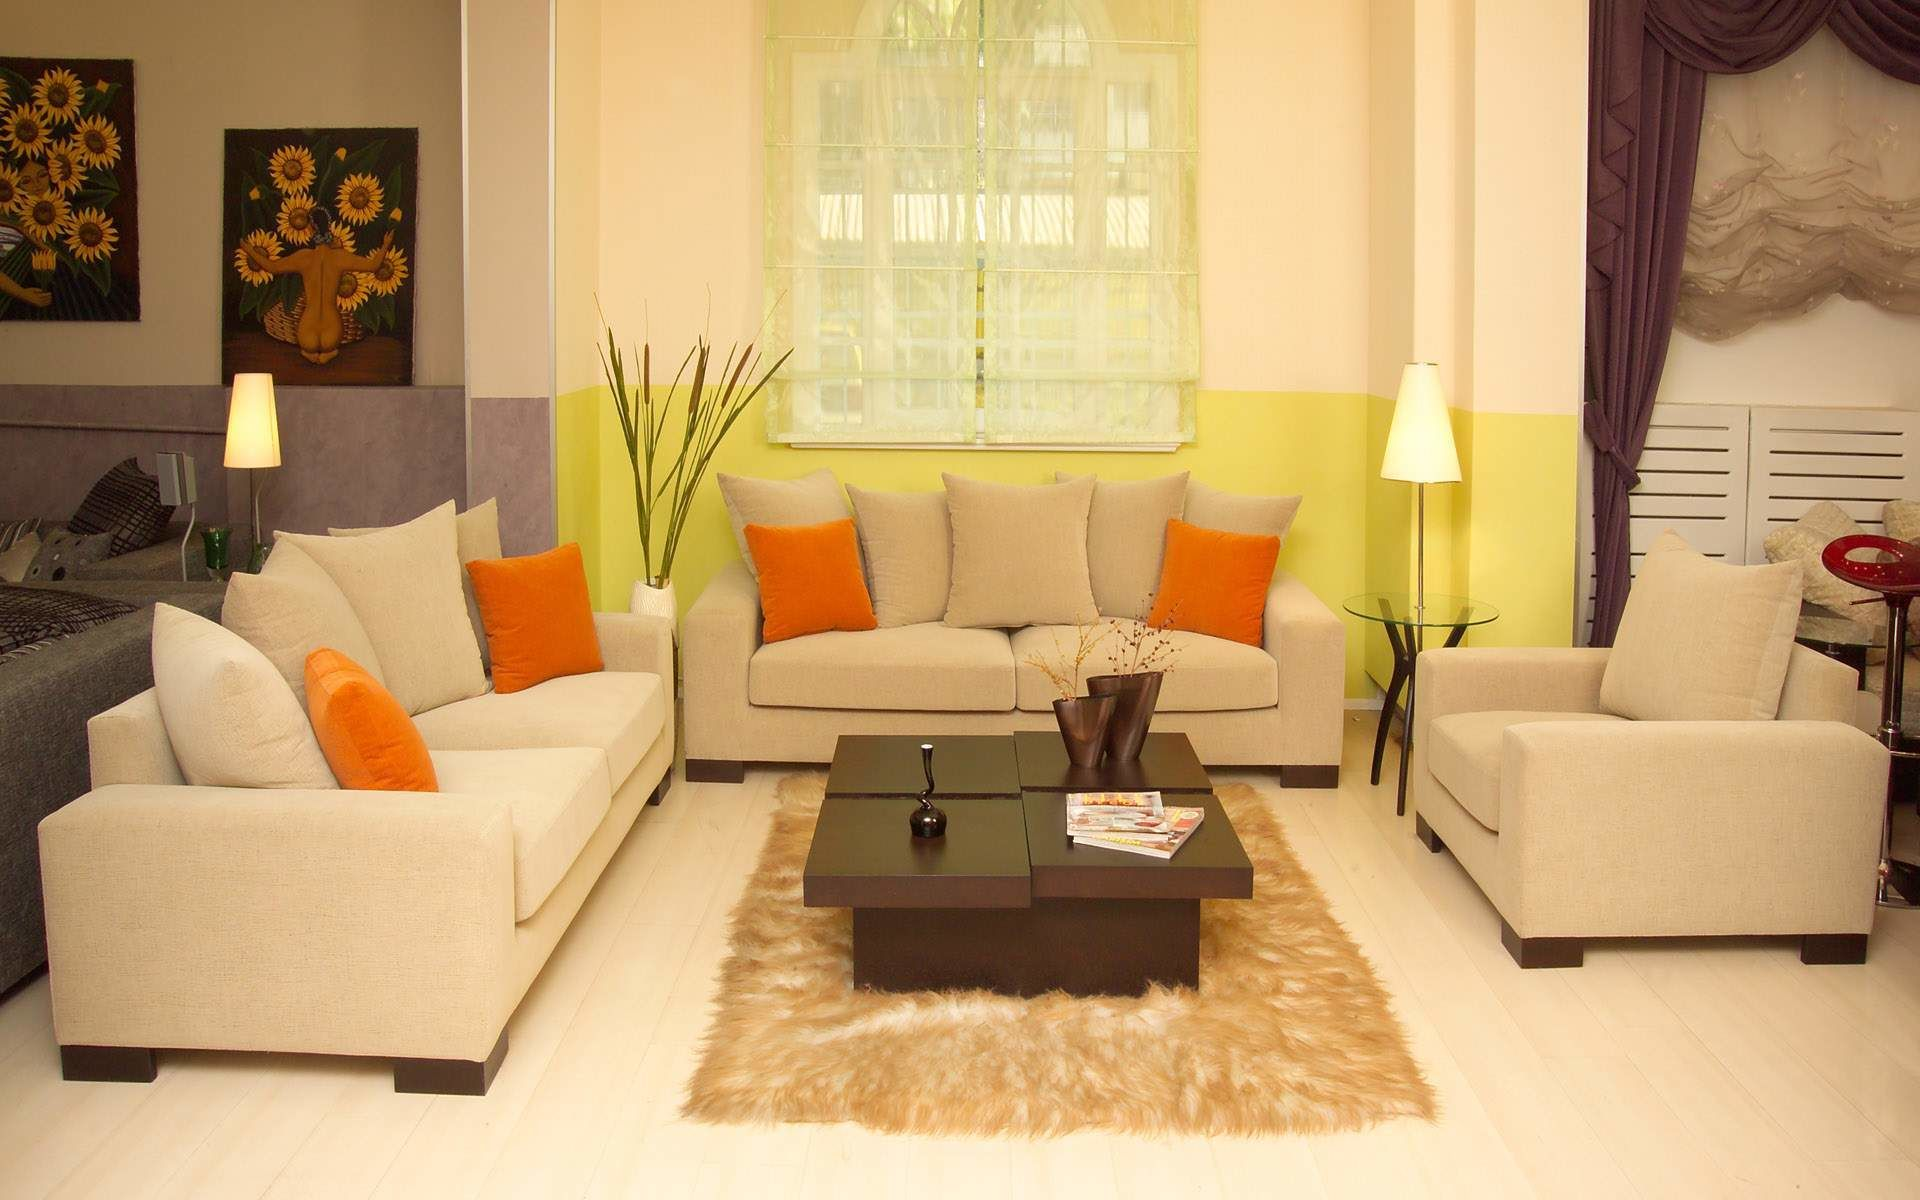 Horrible Most Sofas Most Sofas Photo Most Sofas Photo Sofa Design Ideas Most Sofa Bed 2018 Most Sofa Ikea houzz-03 Most Comfortable Sofa